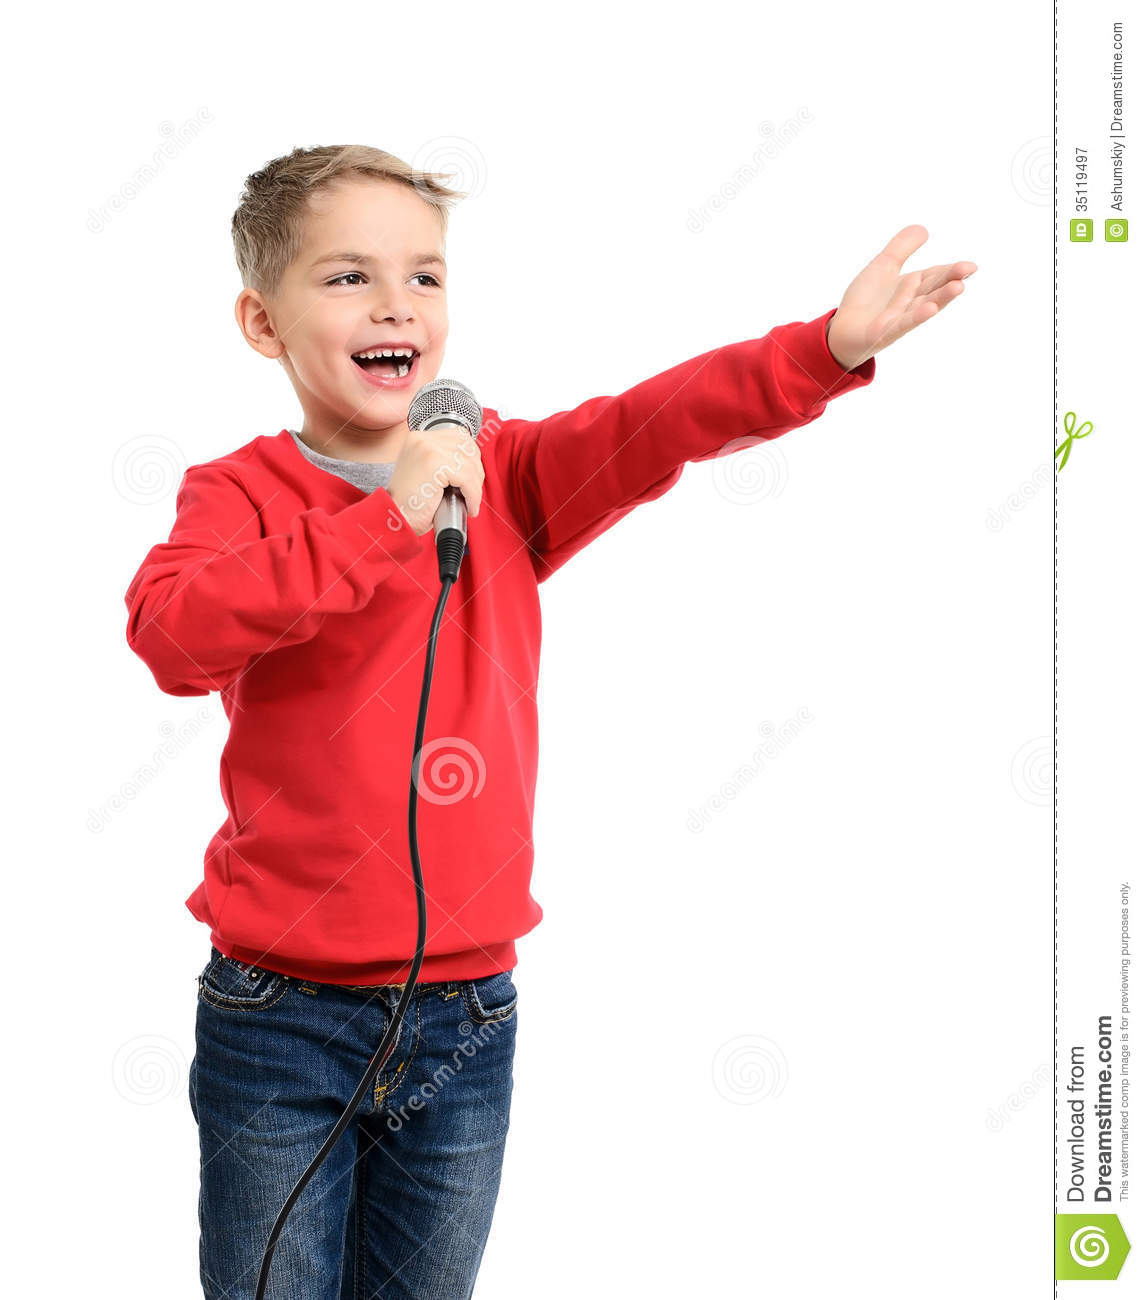 Little Boy With Microphone Sings A Song Royalty Free Stock